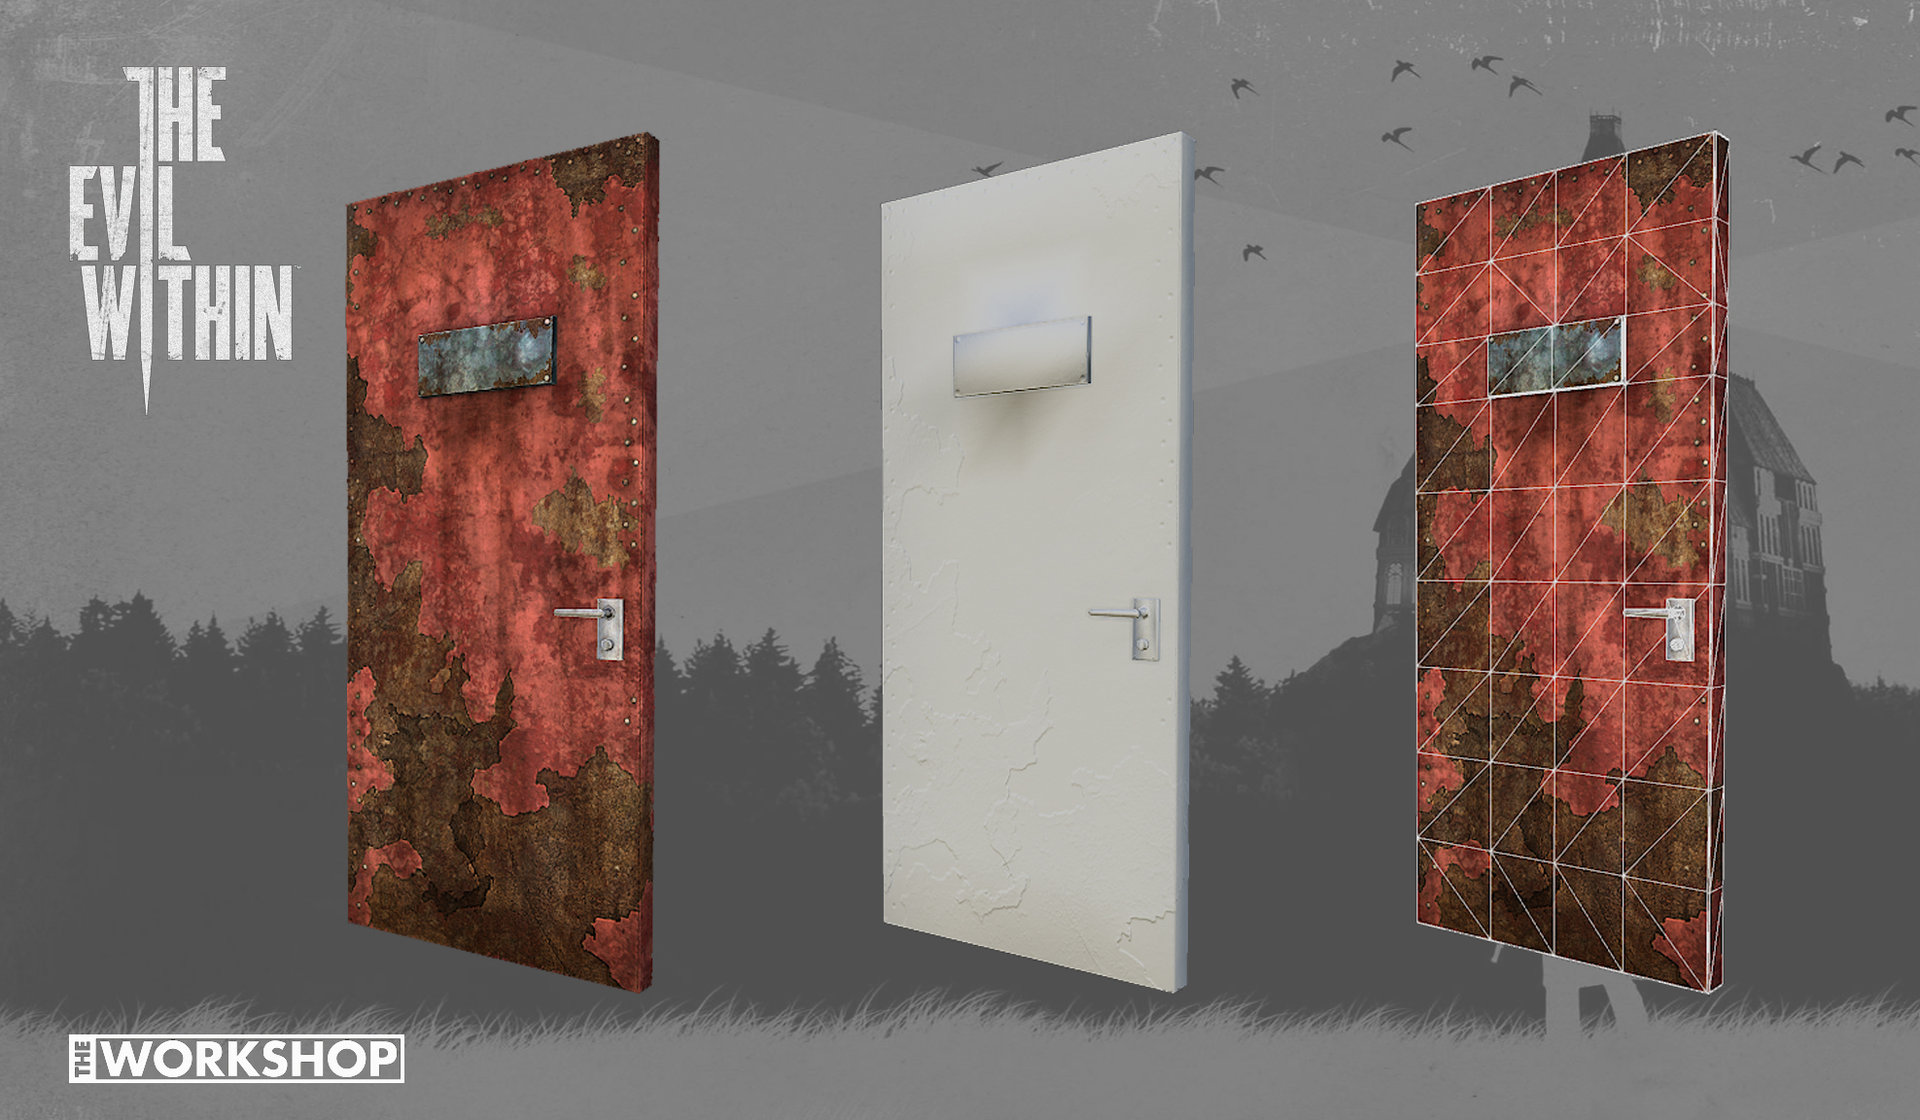 The Door Within The Evil Within & ArtStation - The Door Within The Evil Within Charleen Au